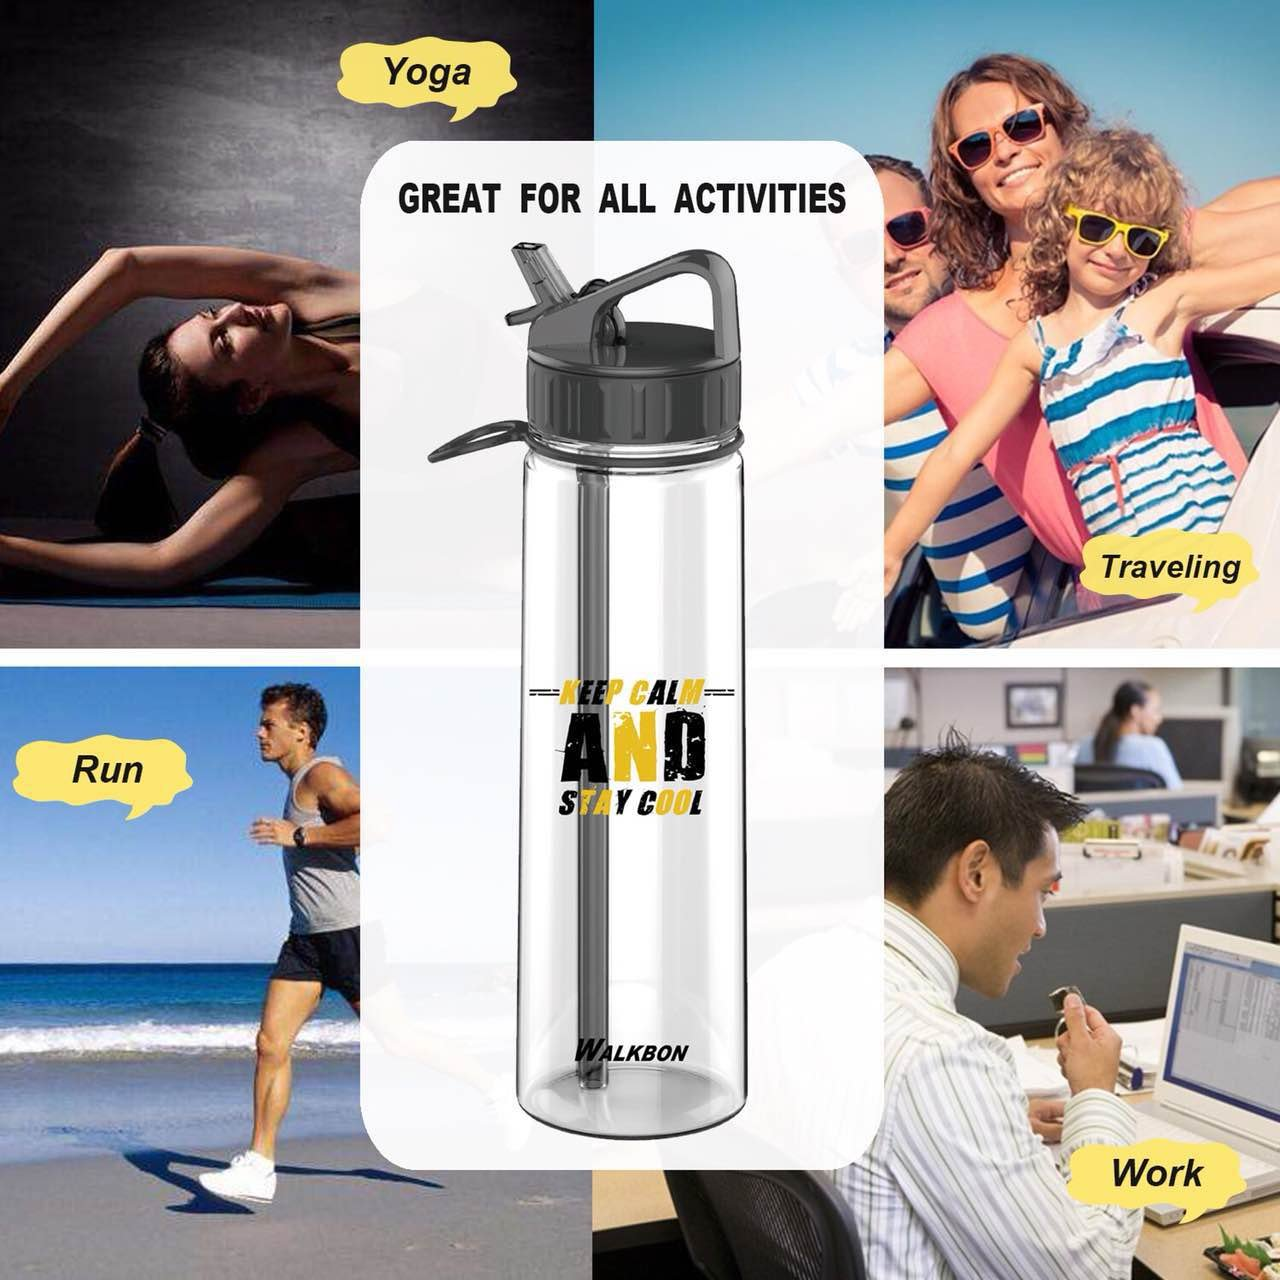 900ML L1 Insulated Bottle for Outdoor Sport Hydration FDA Approved BPA-Free Mist Water Bottle /… Black-Yellow, 30OZ Black, 20OZ Keepax Sports Water Bottle